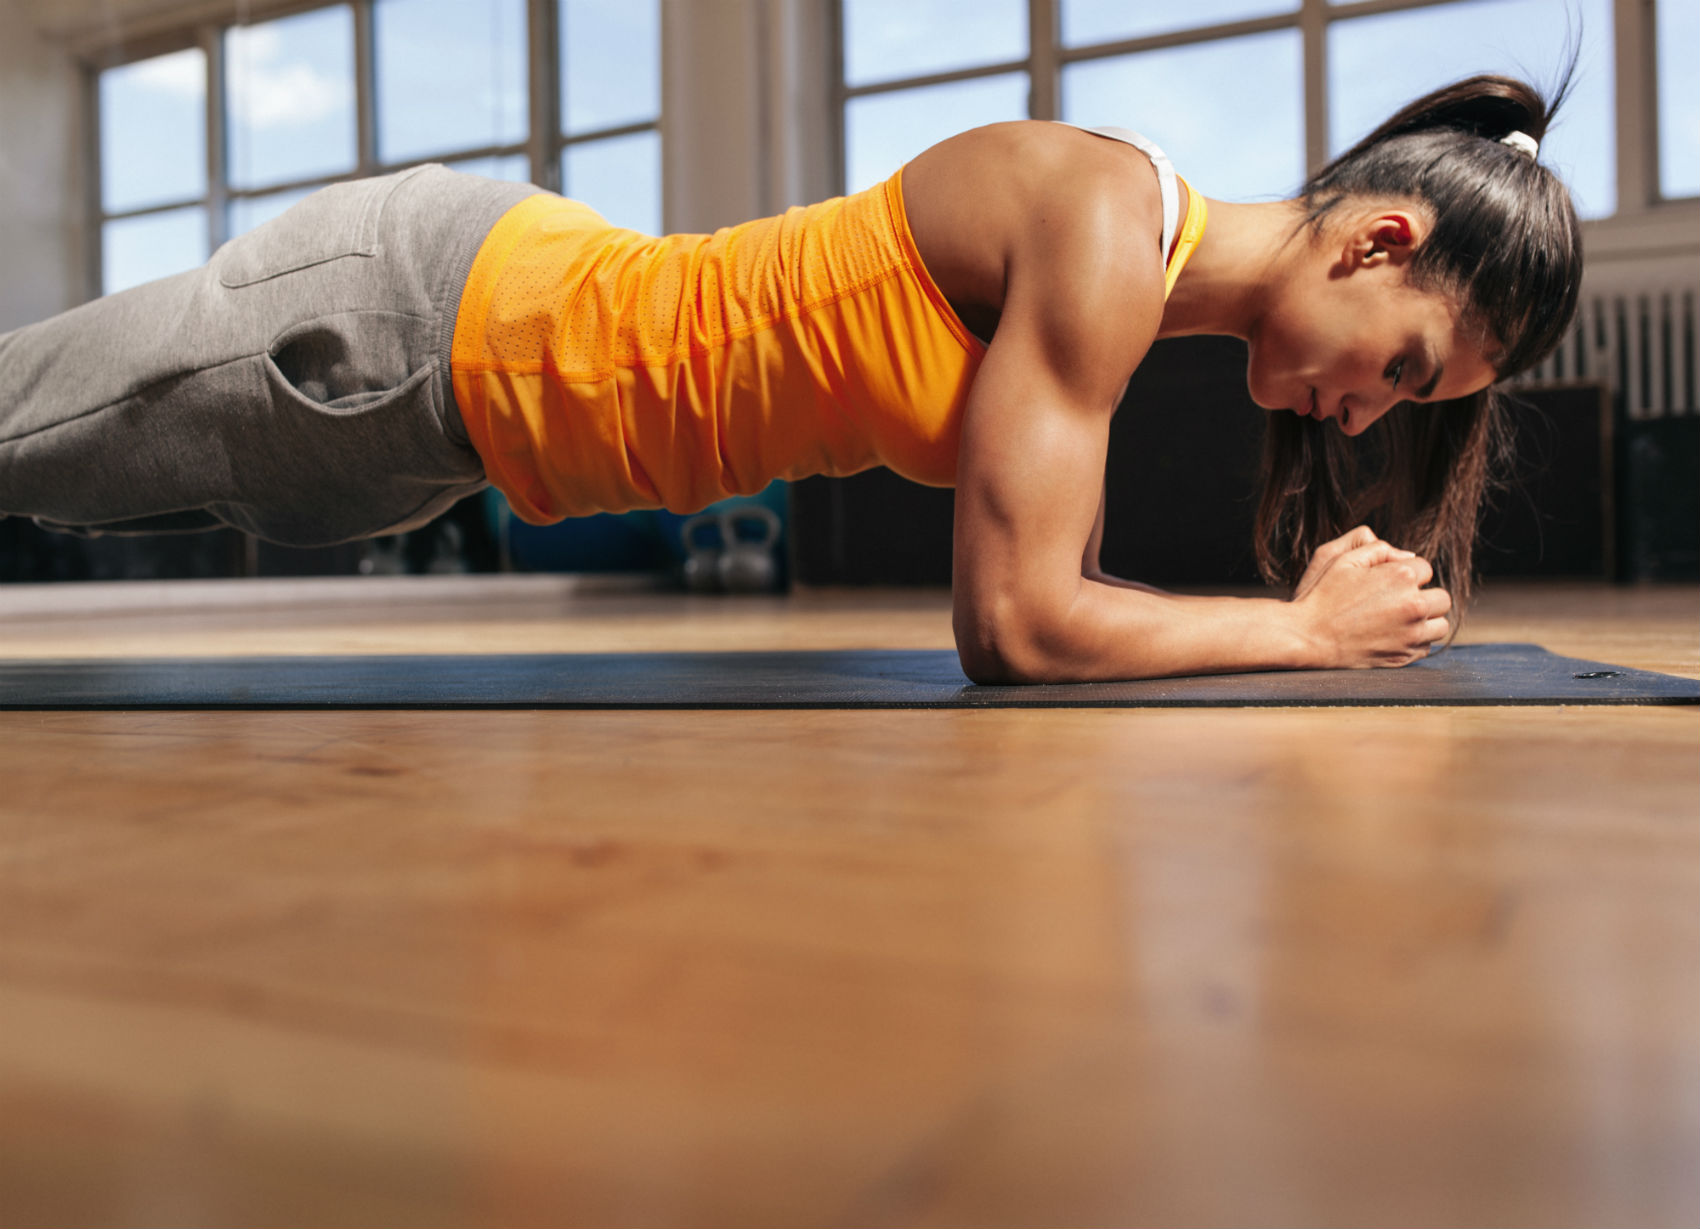 August Fitness Challenge: How Long Can You Hold a Forearm Plank?